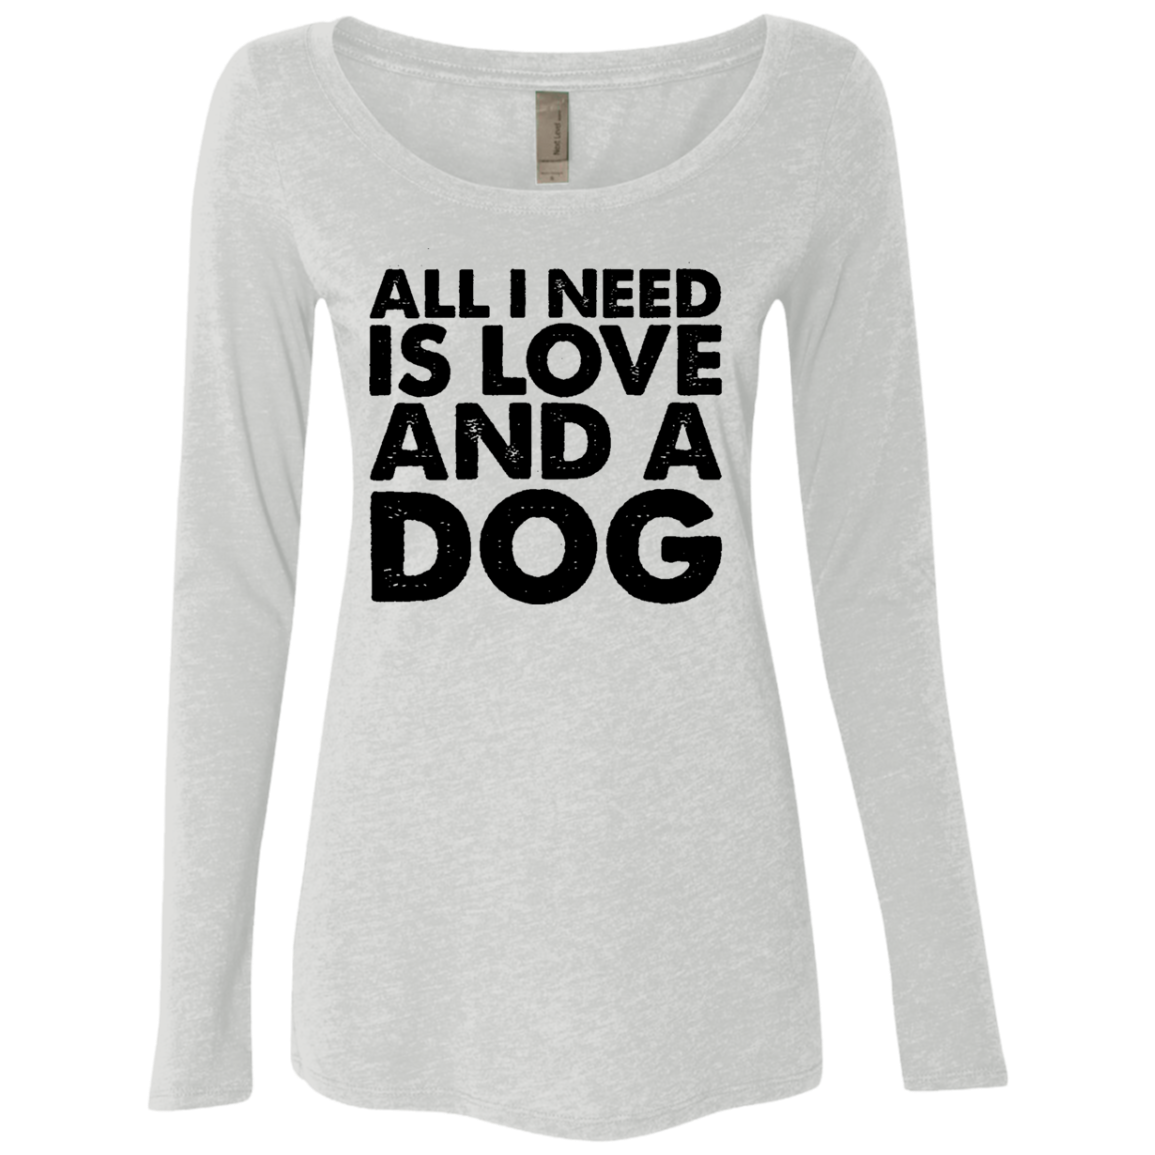 All I Need is Love and a Dog Women's Long Sleeve Tee